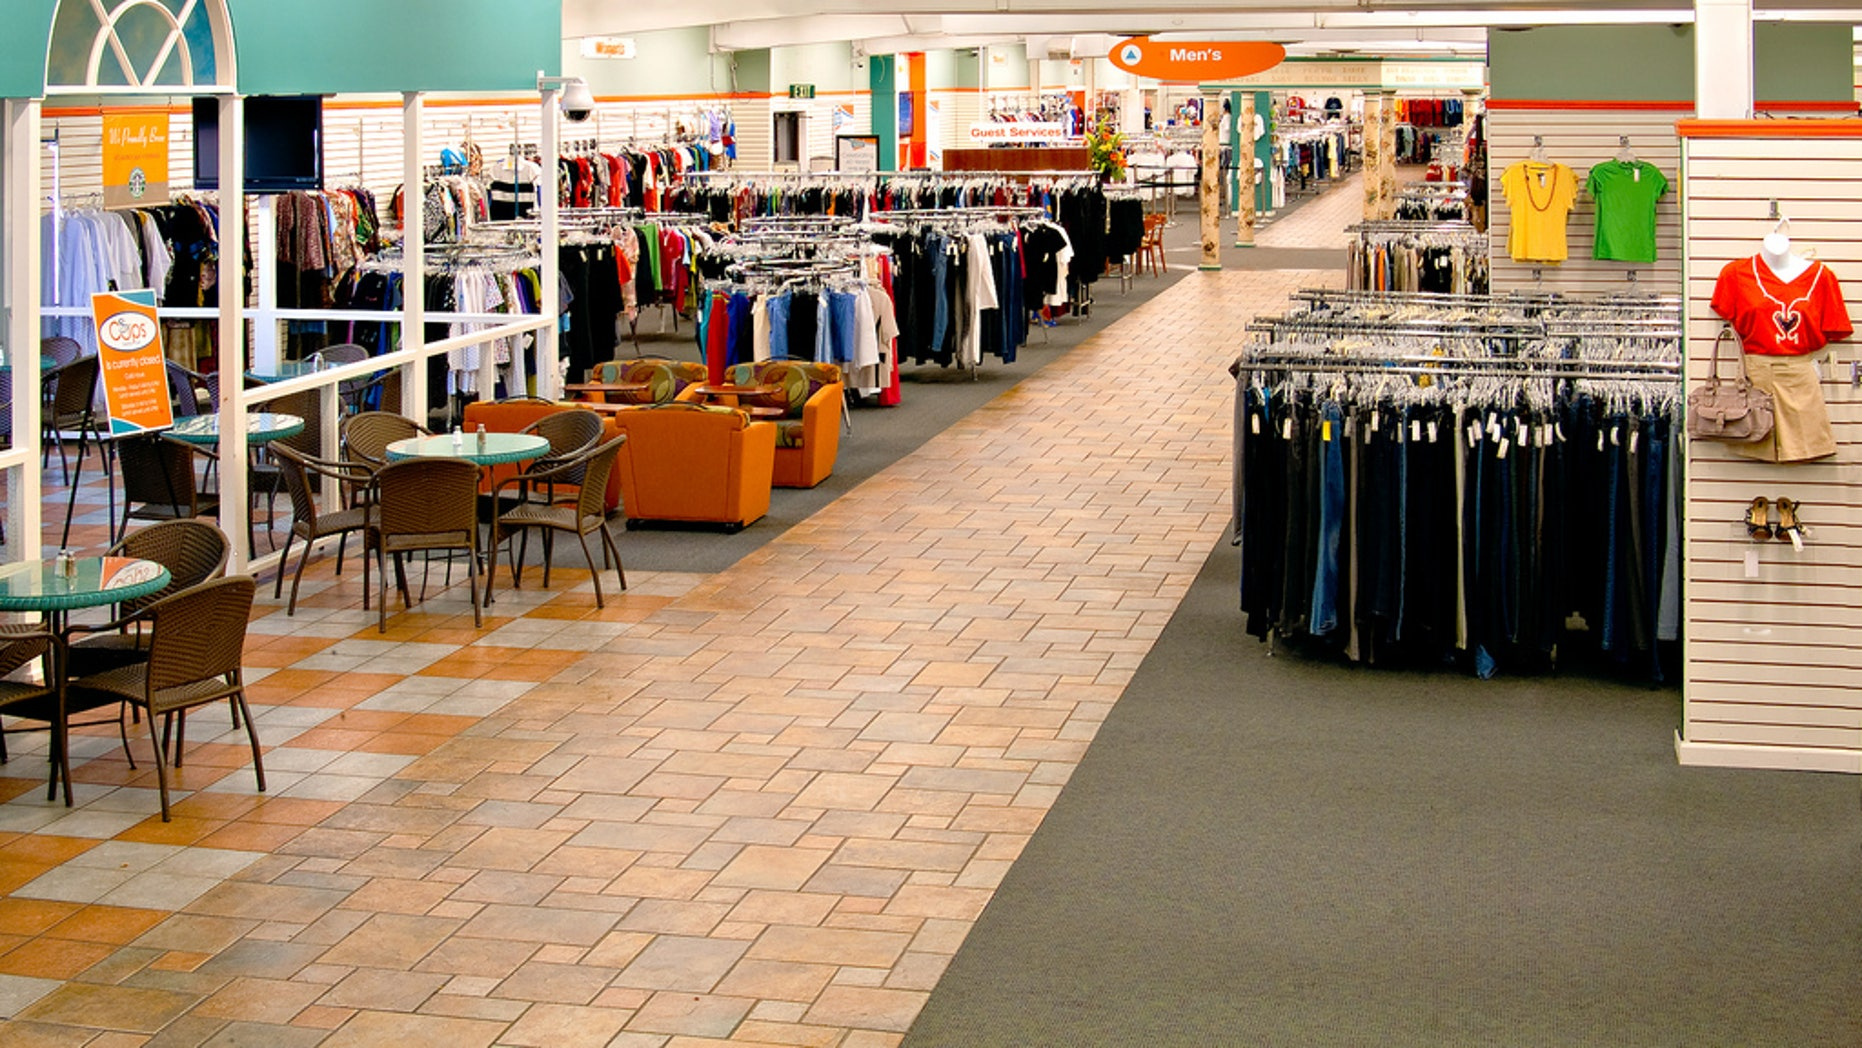 The retail floor at the Unclaimed Baggage Center in Scottsboro, Alabama. (courtesy UBC)